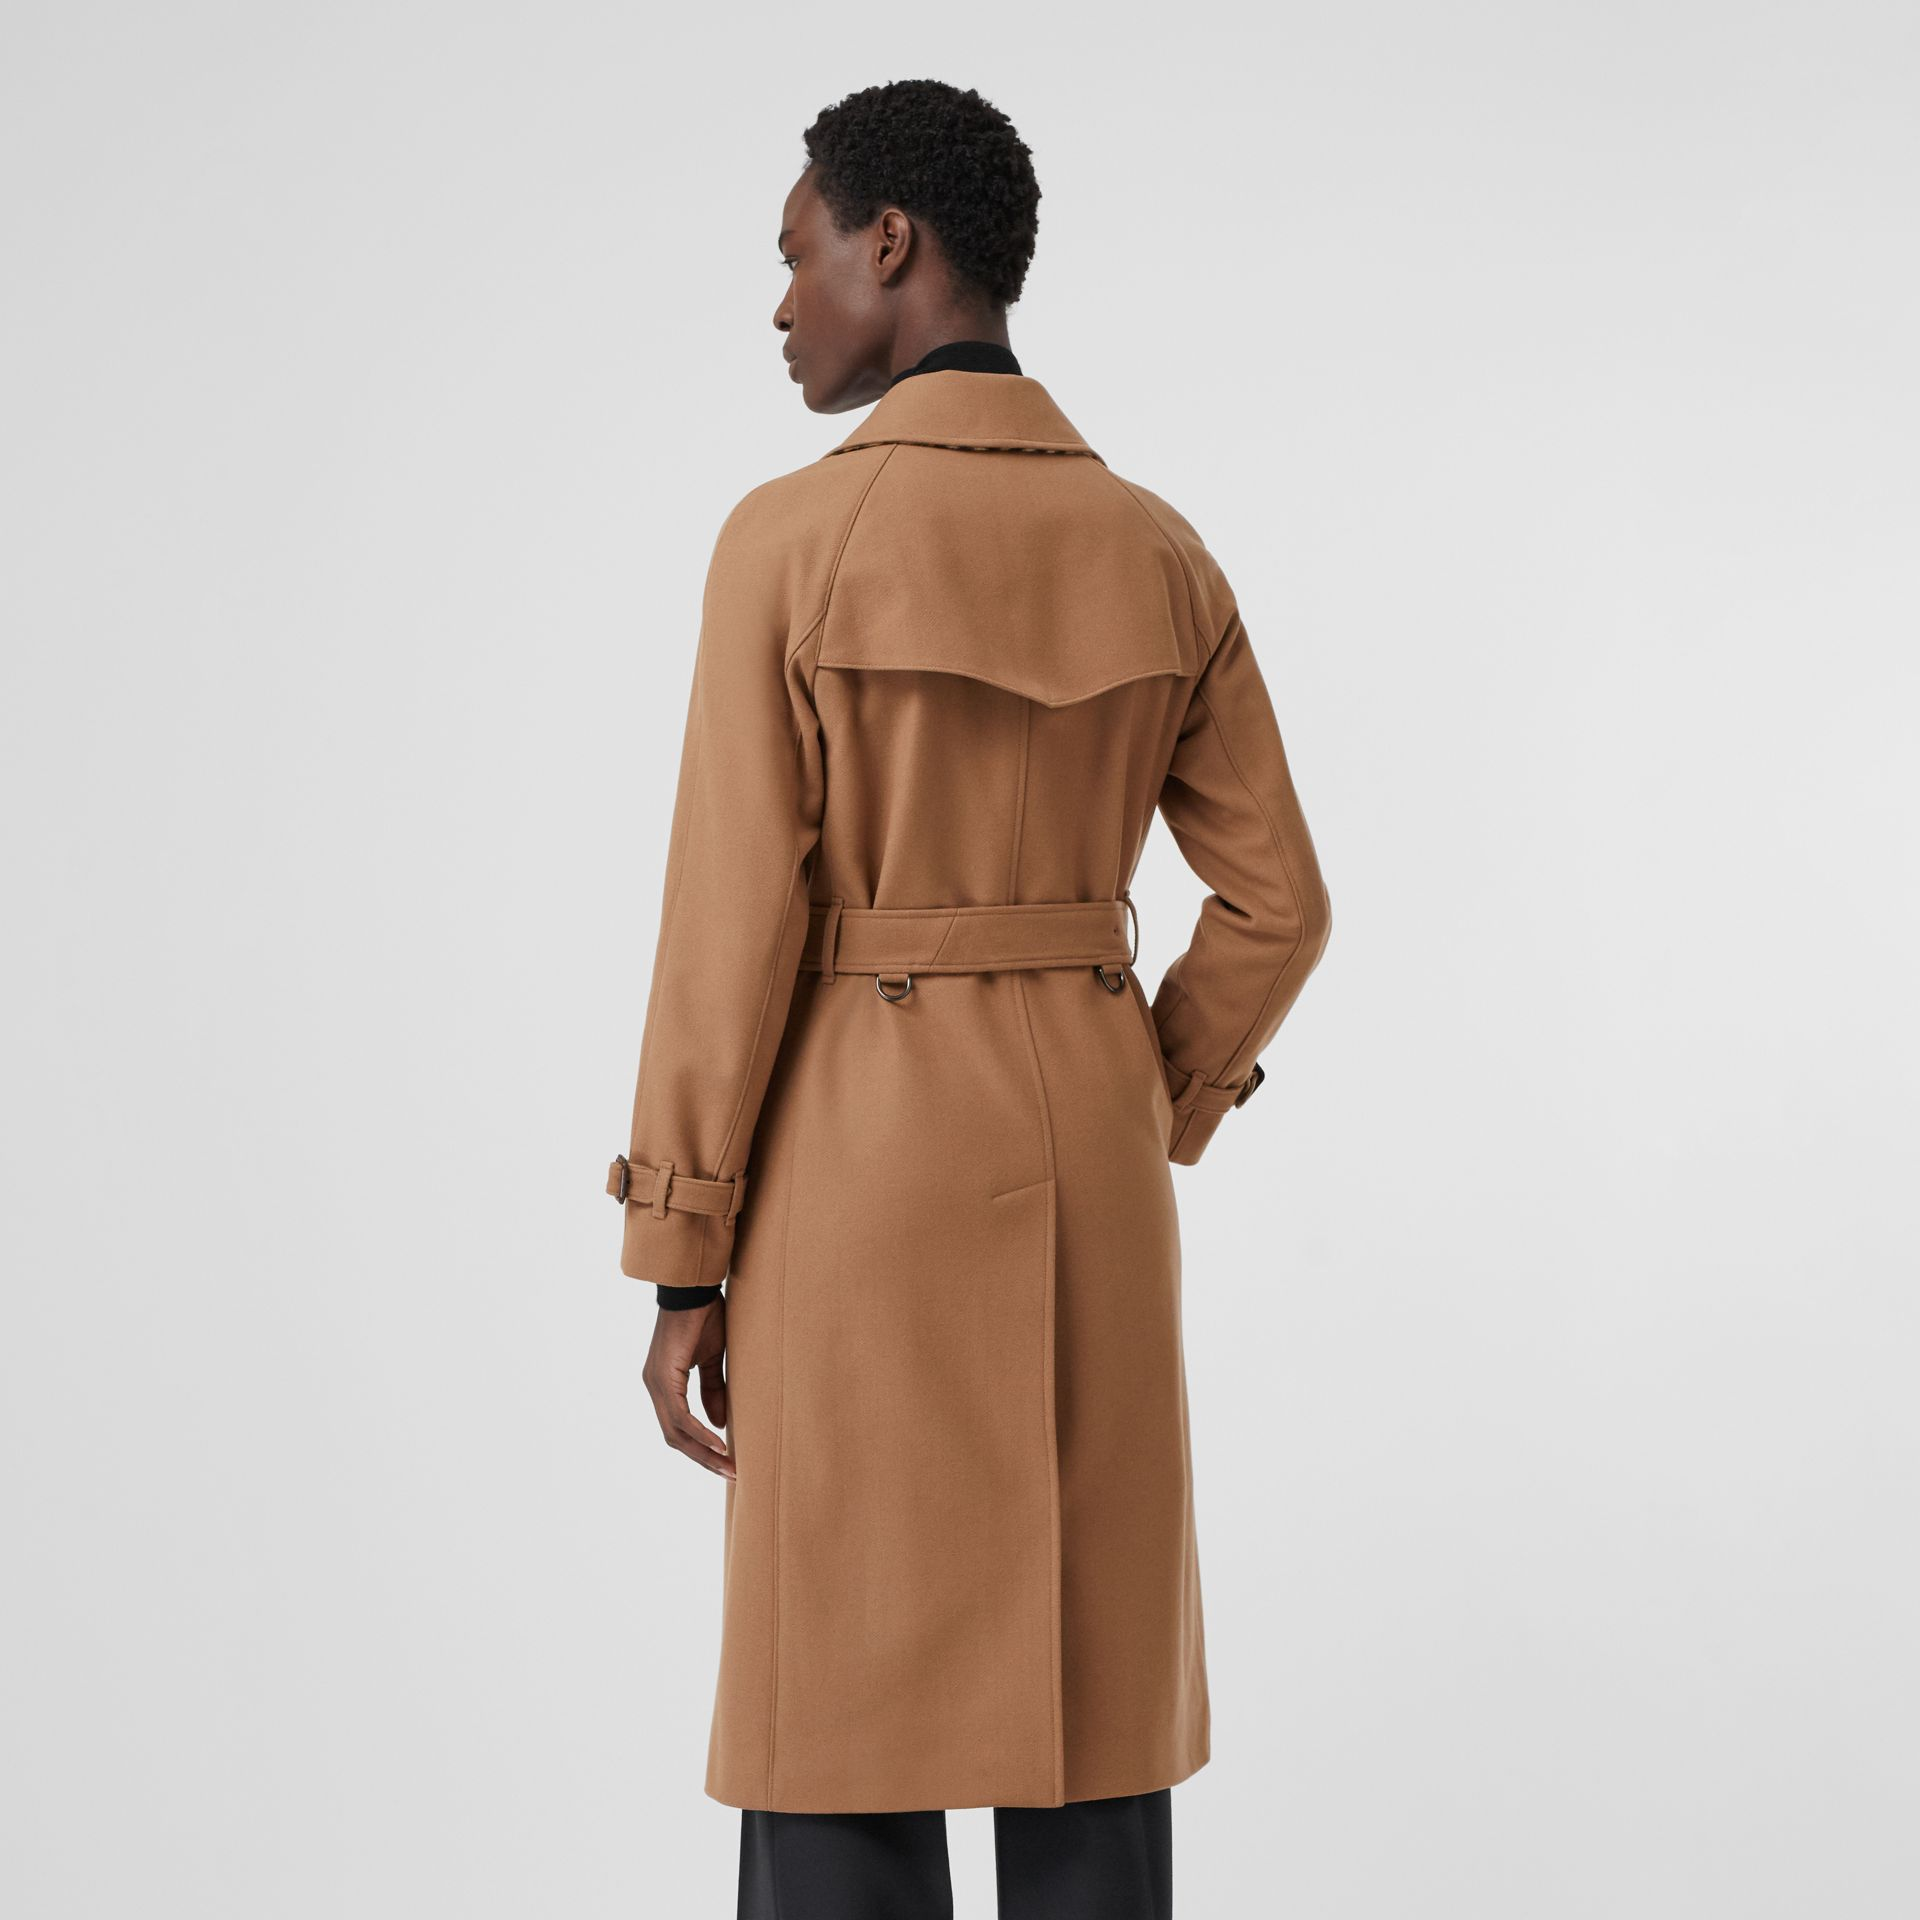 Herringbone Wool Cashmere Blend Trench Coat in Camel - Women | Burberry - gallery image 2